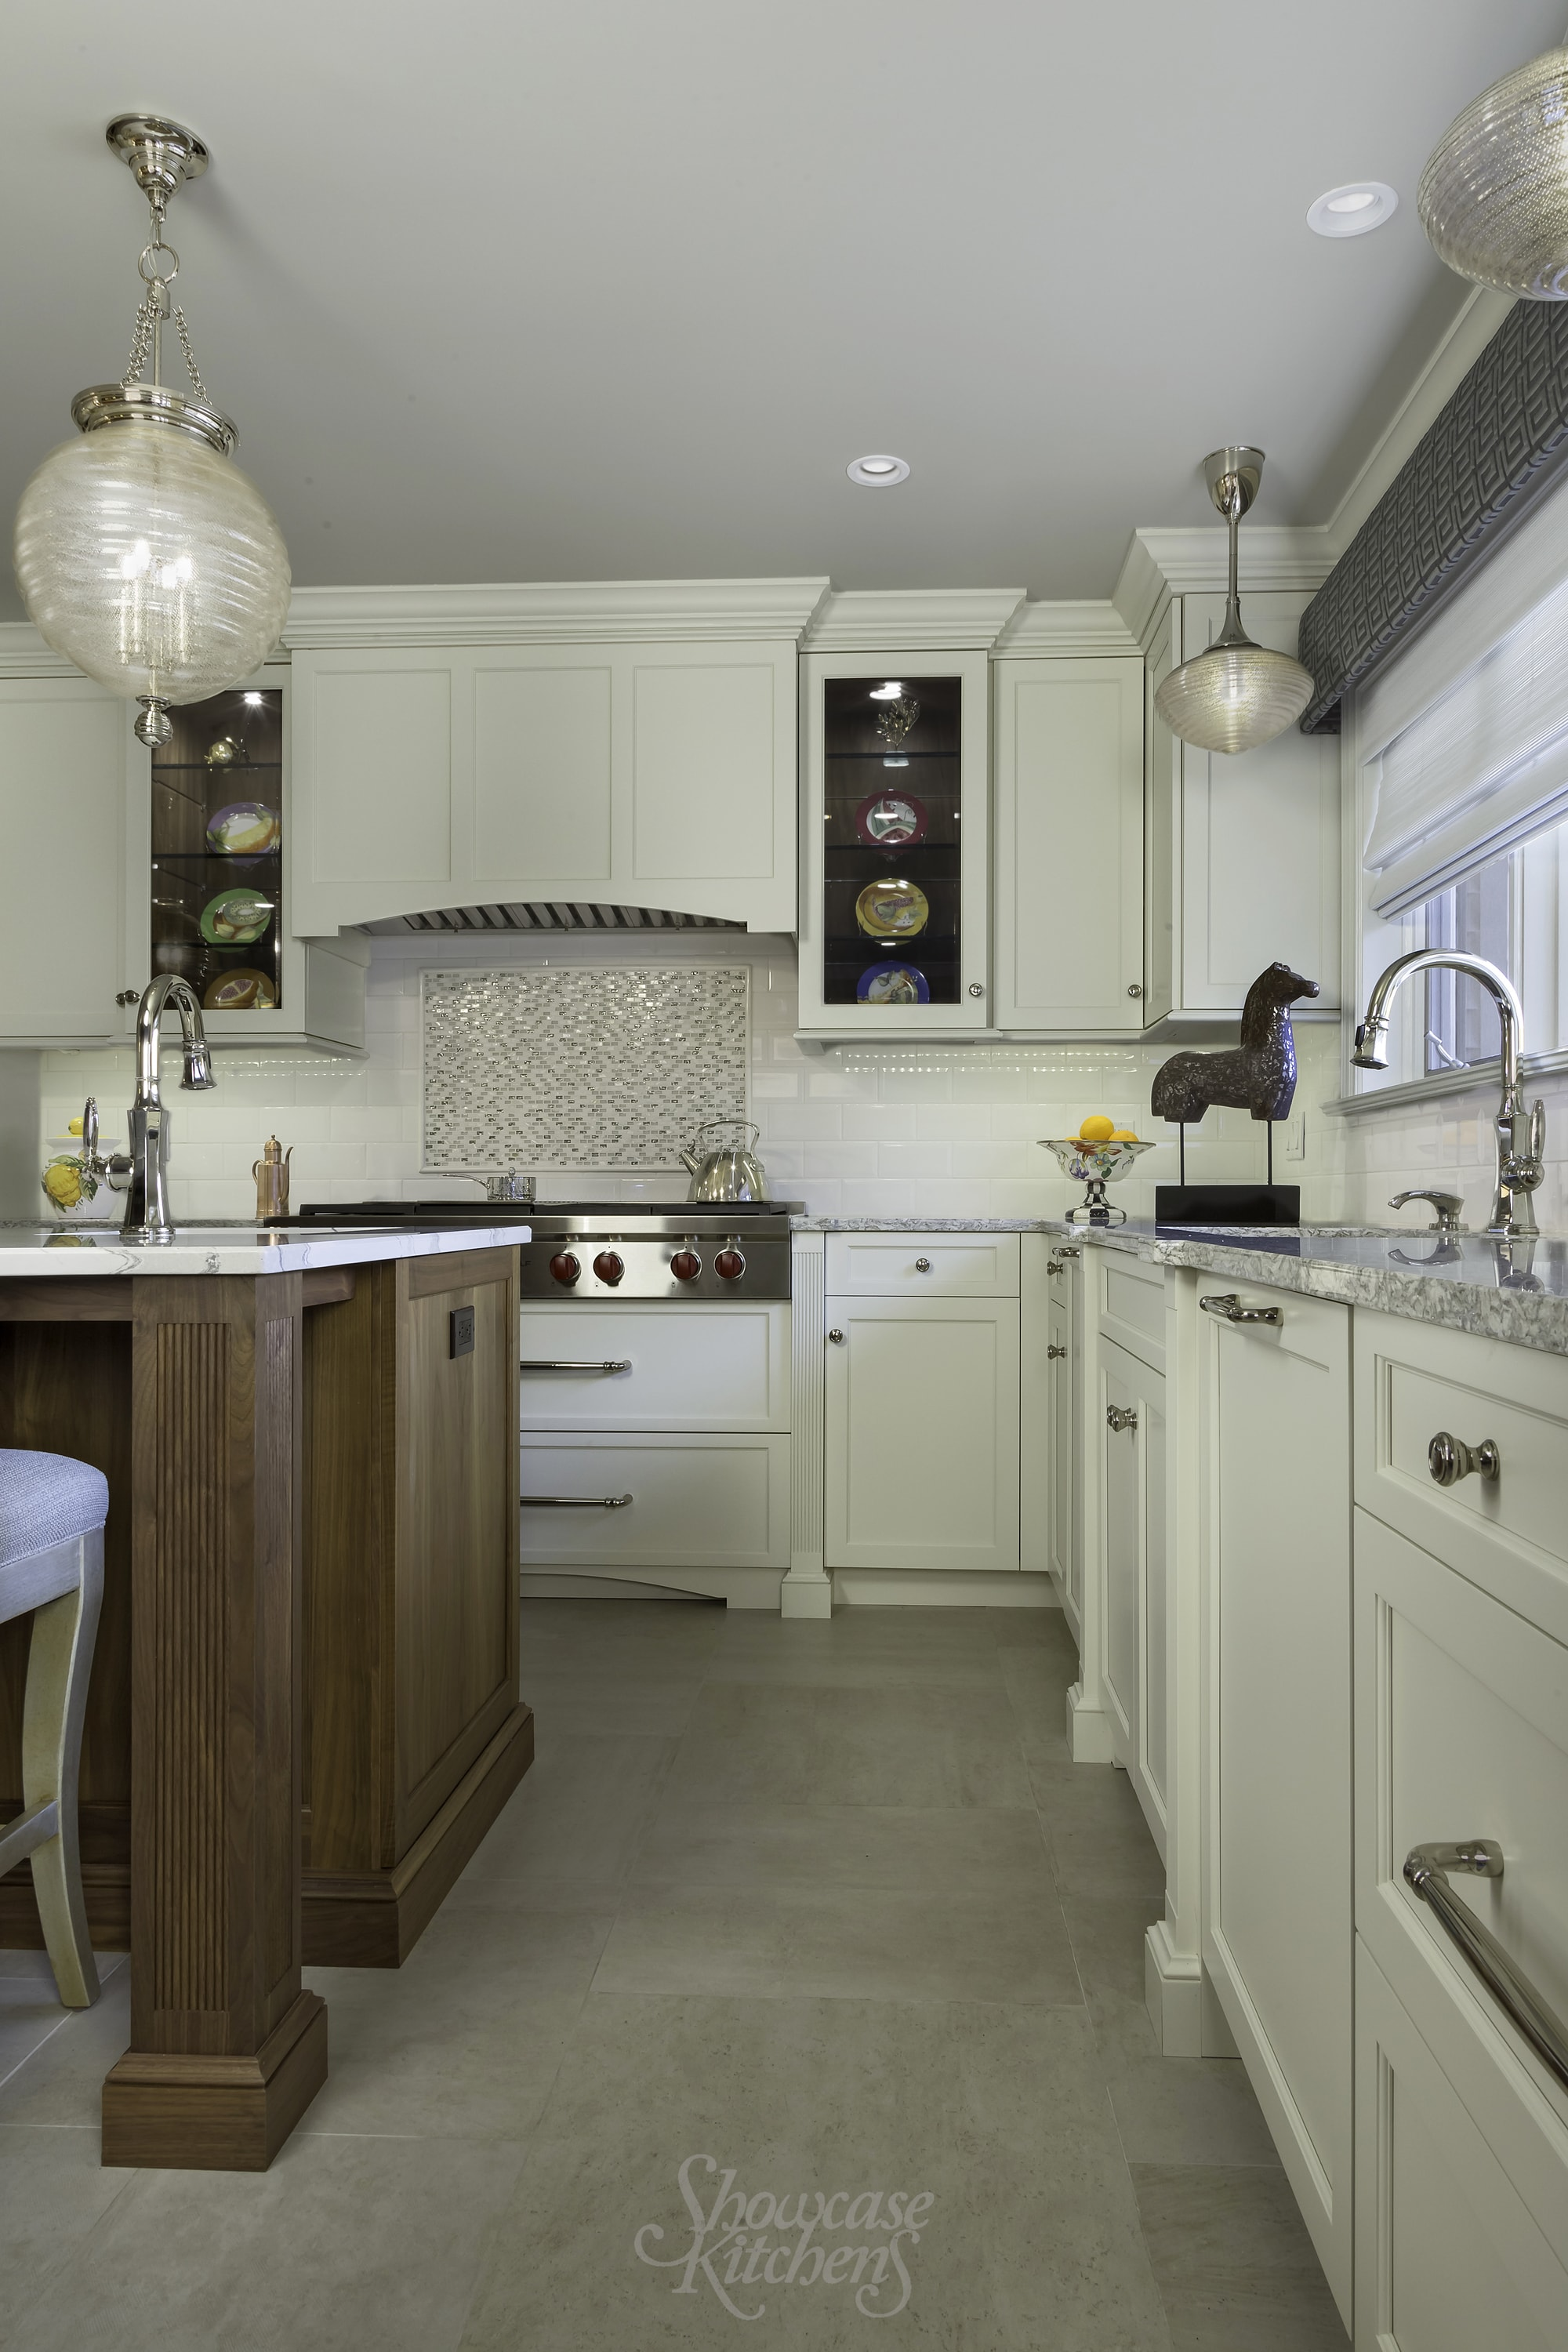 Transitional style kitchen with custom built pull out drawers on center island